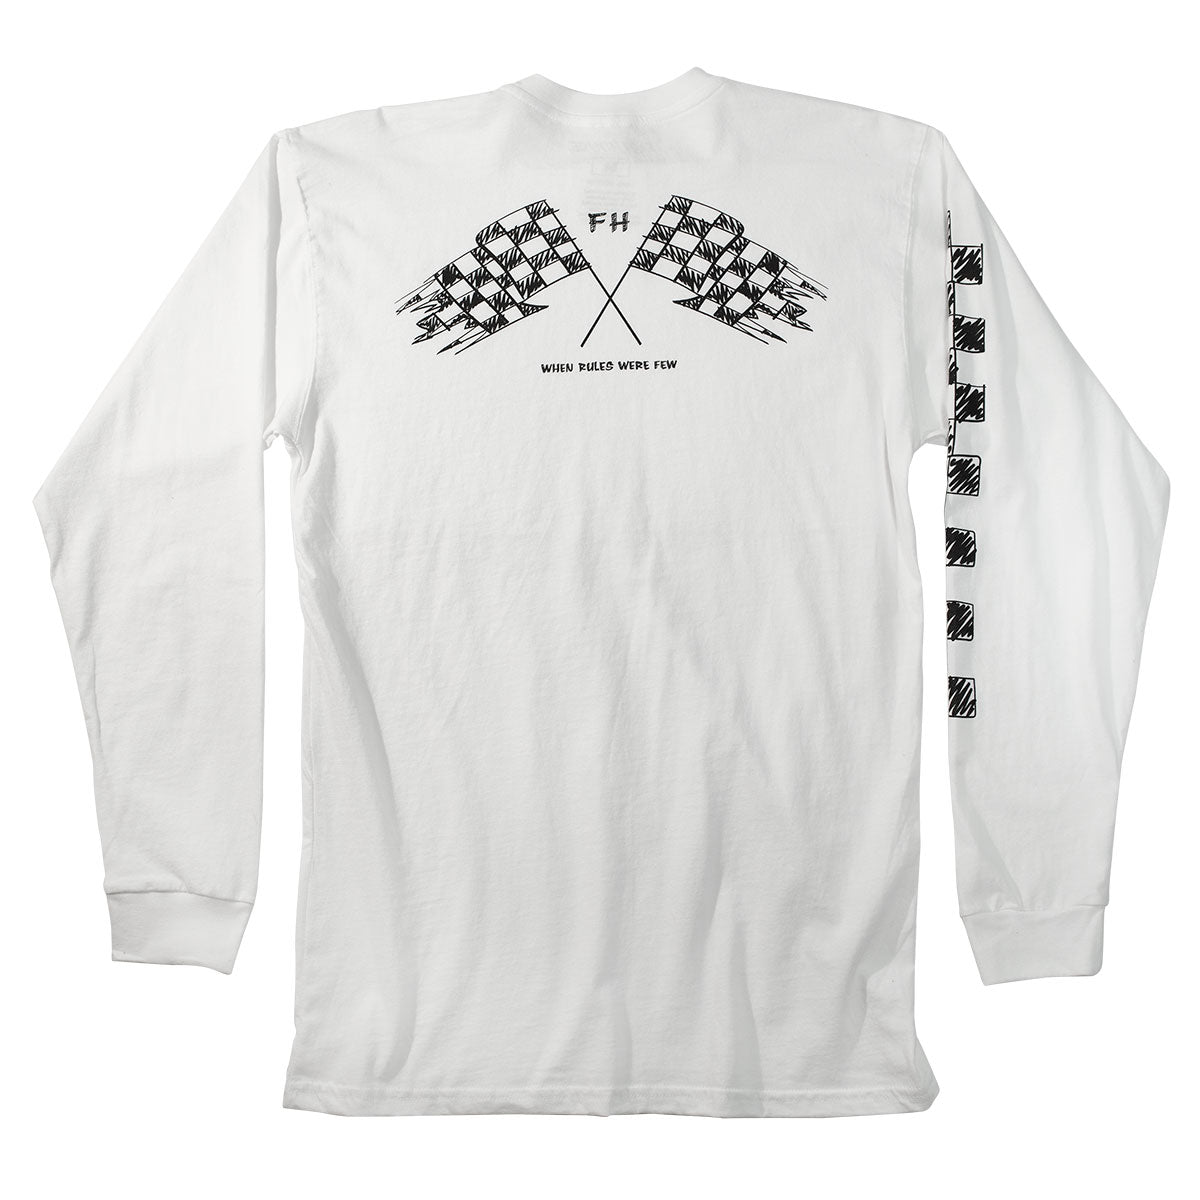 Fasthouse - Finish Line Long Sleeve Tee - White